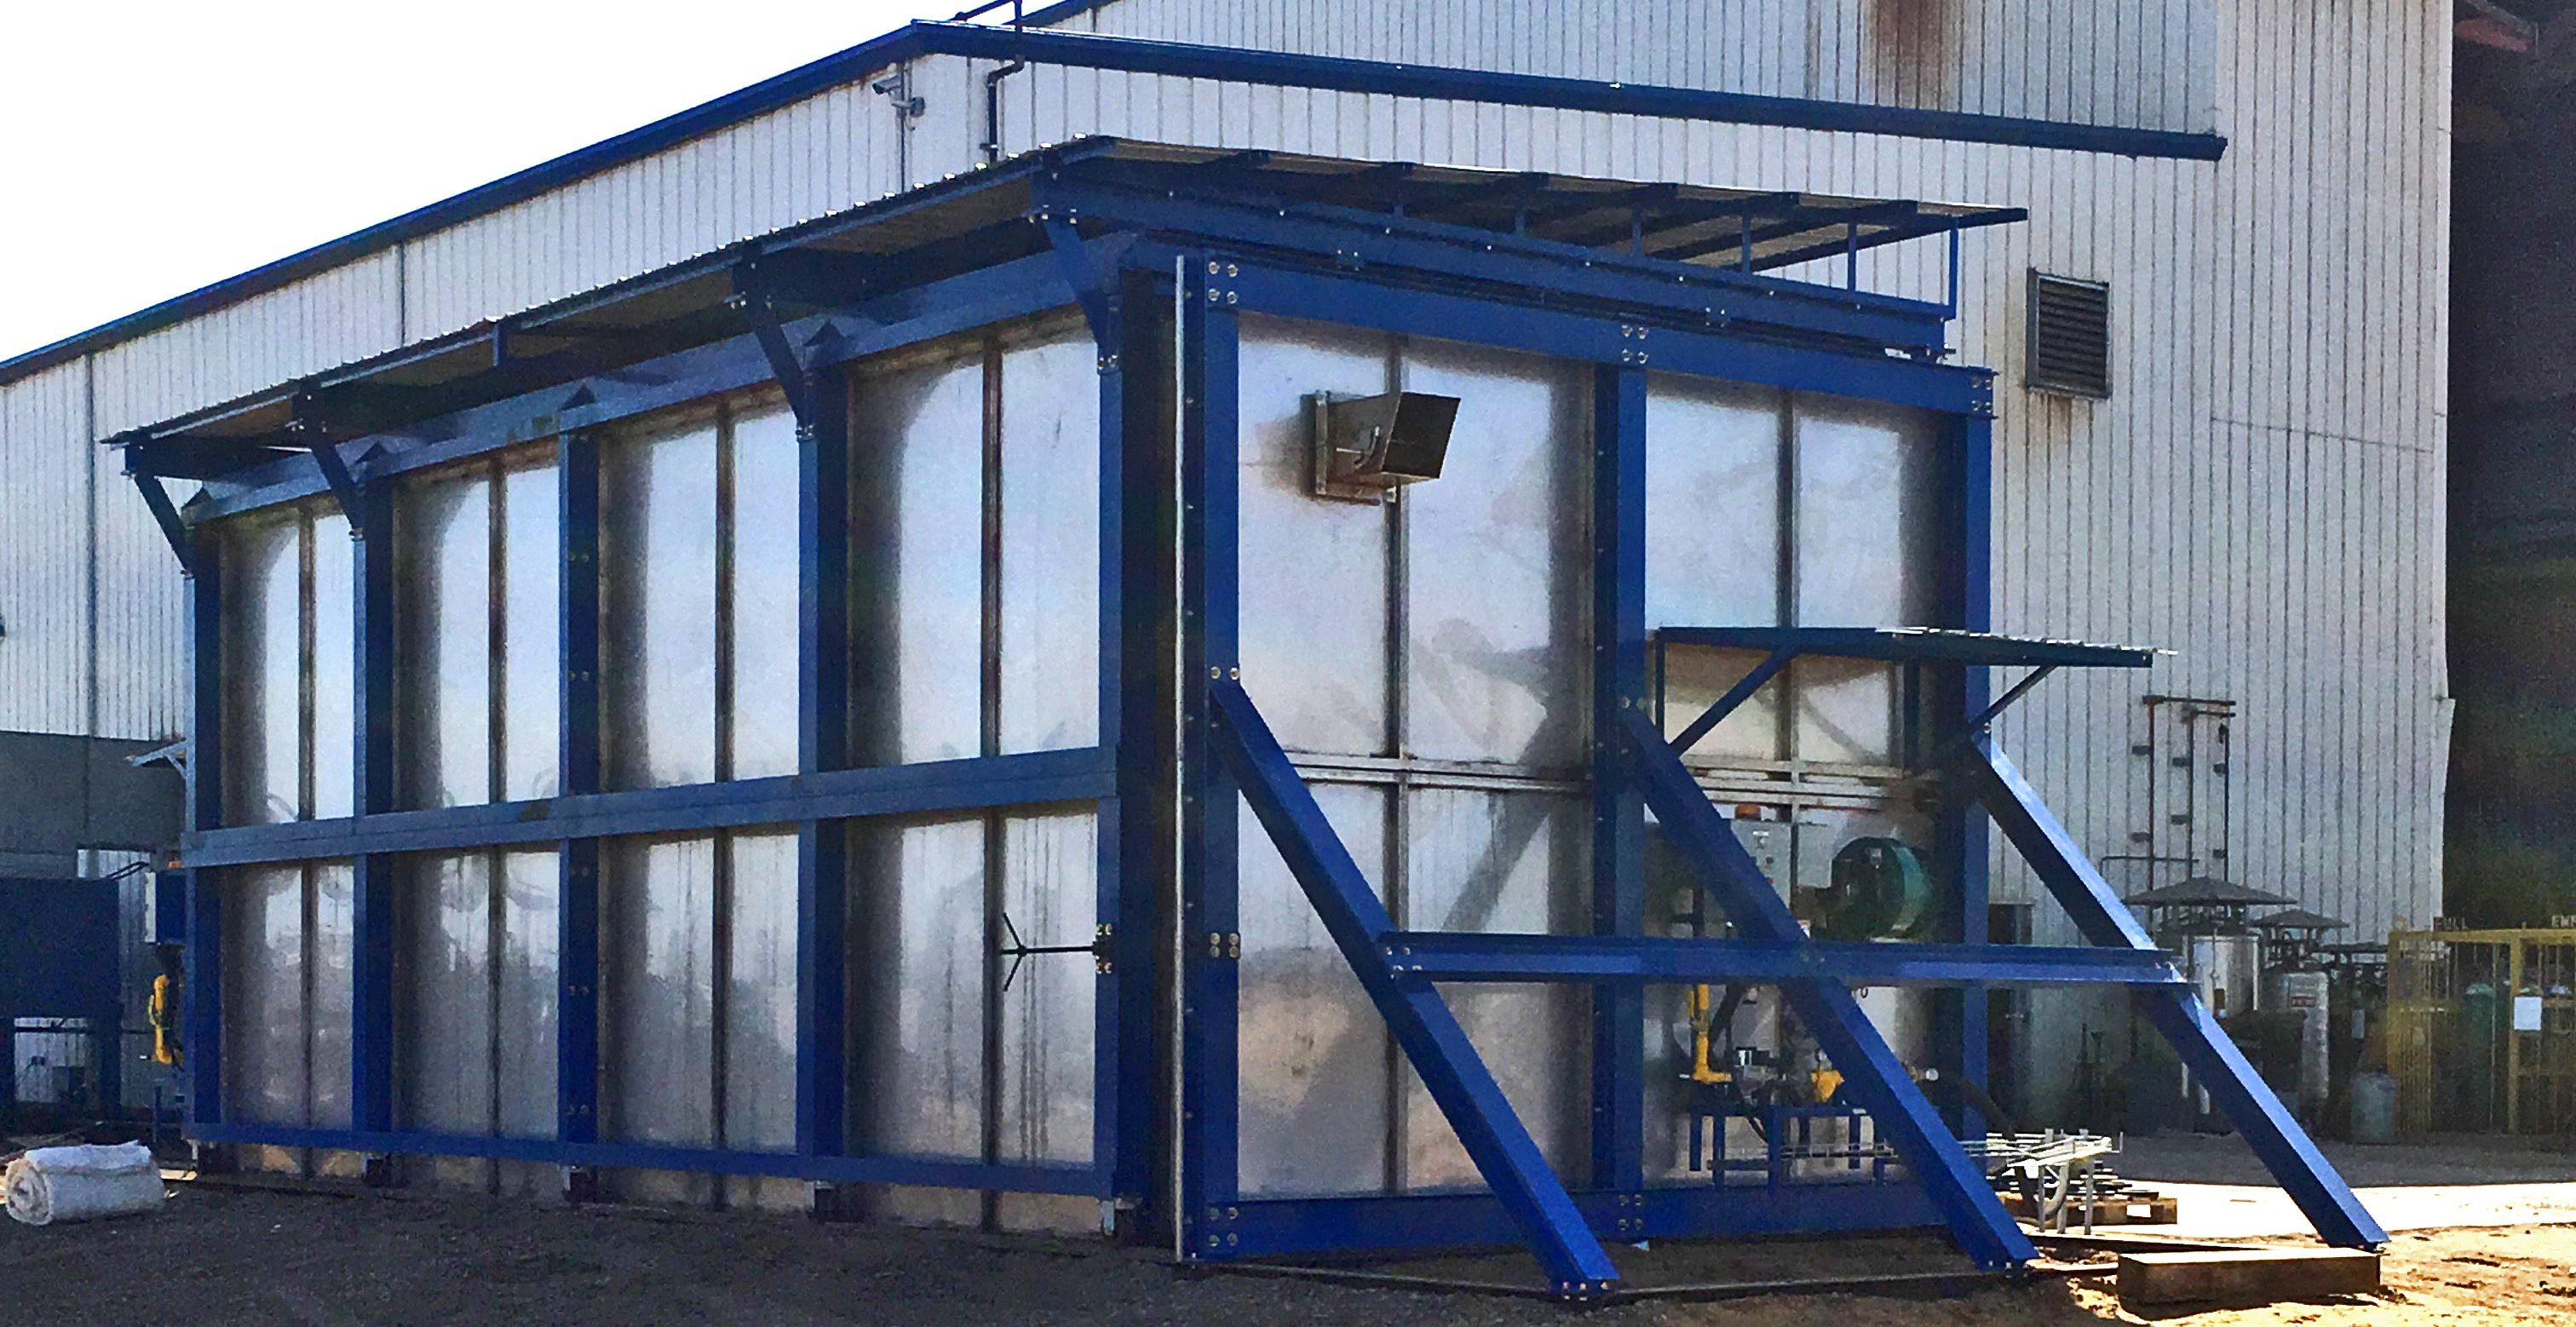 Post Weld Heat Treatment Oven (PWHT)